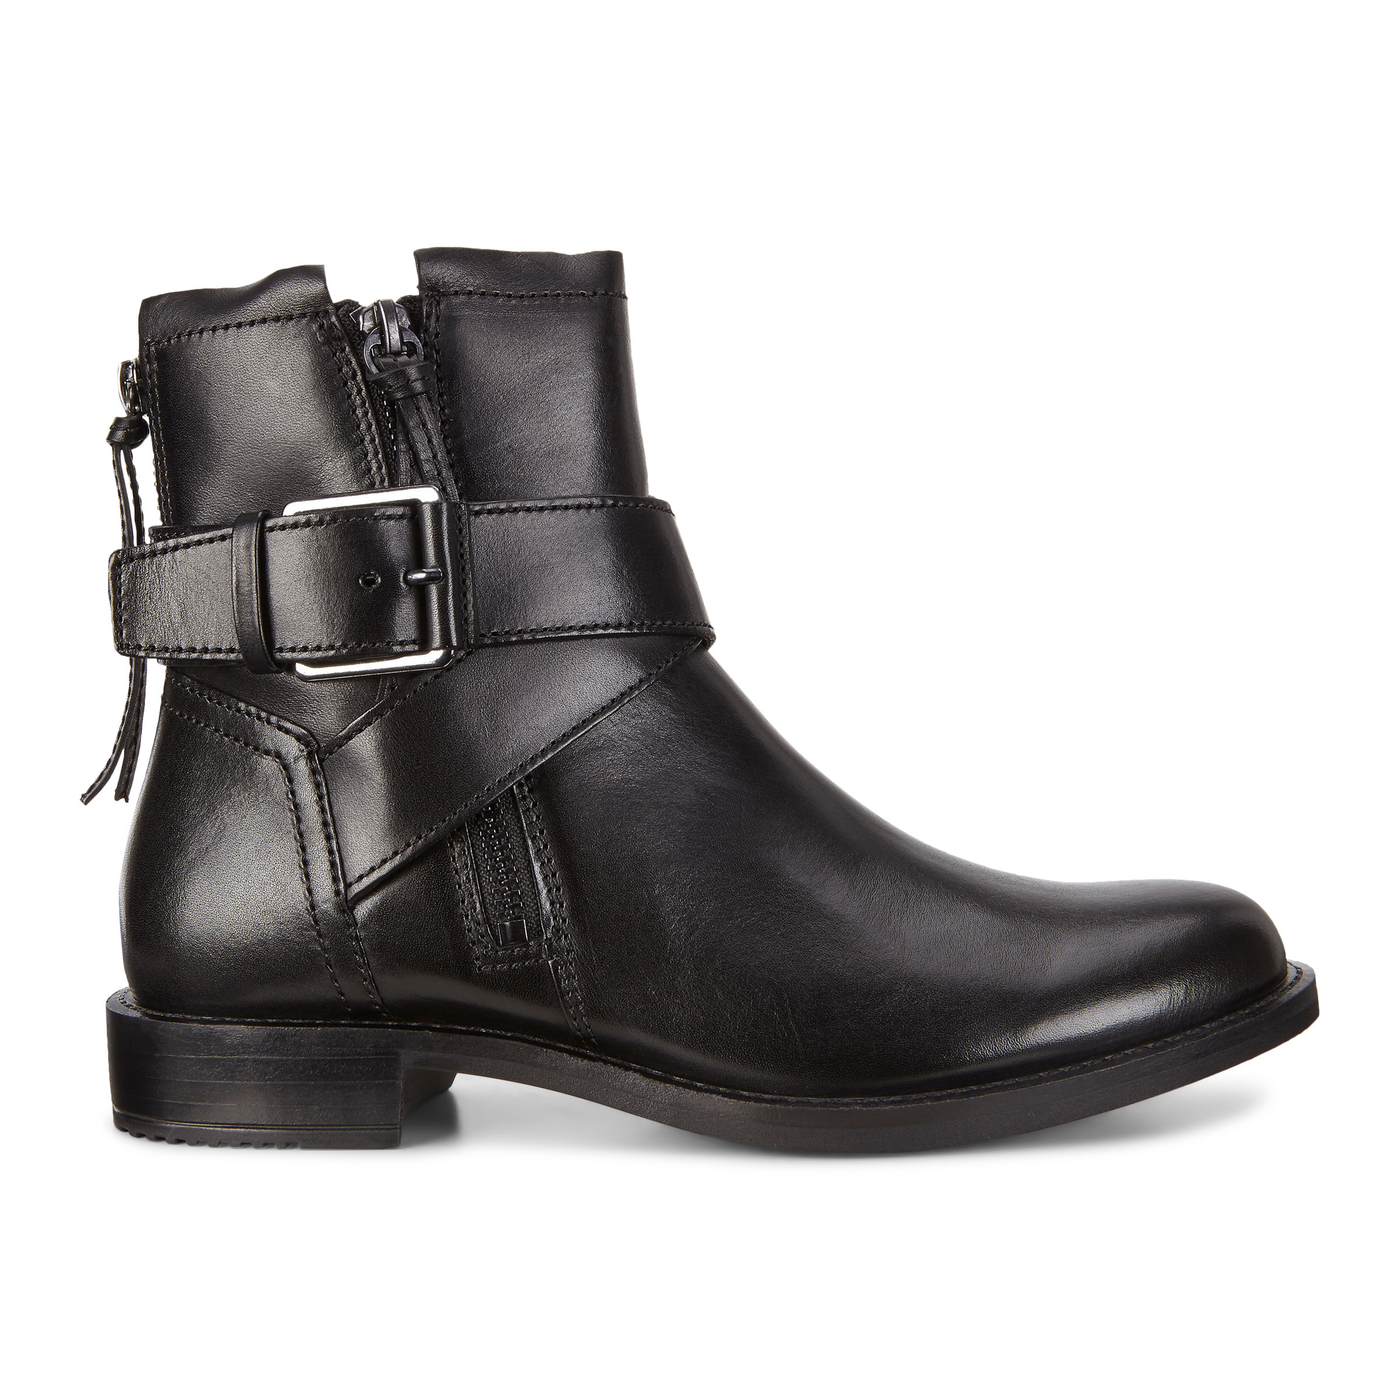 ECCO SHAPE Engineer Boot 25mm